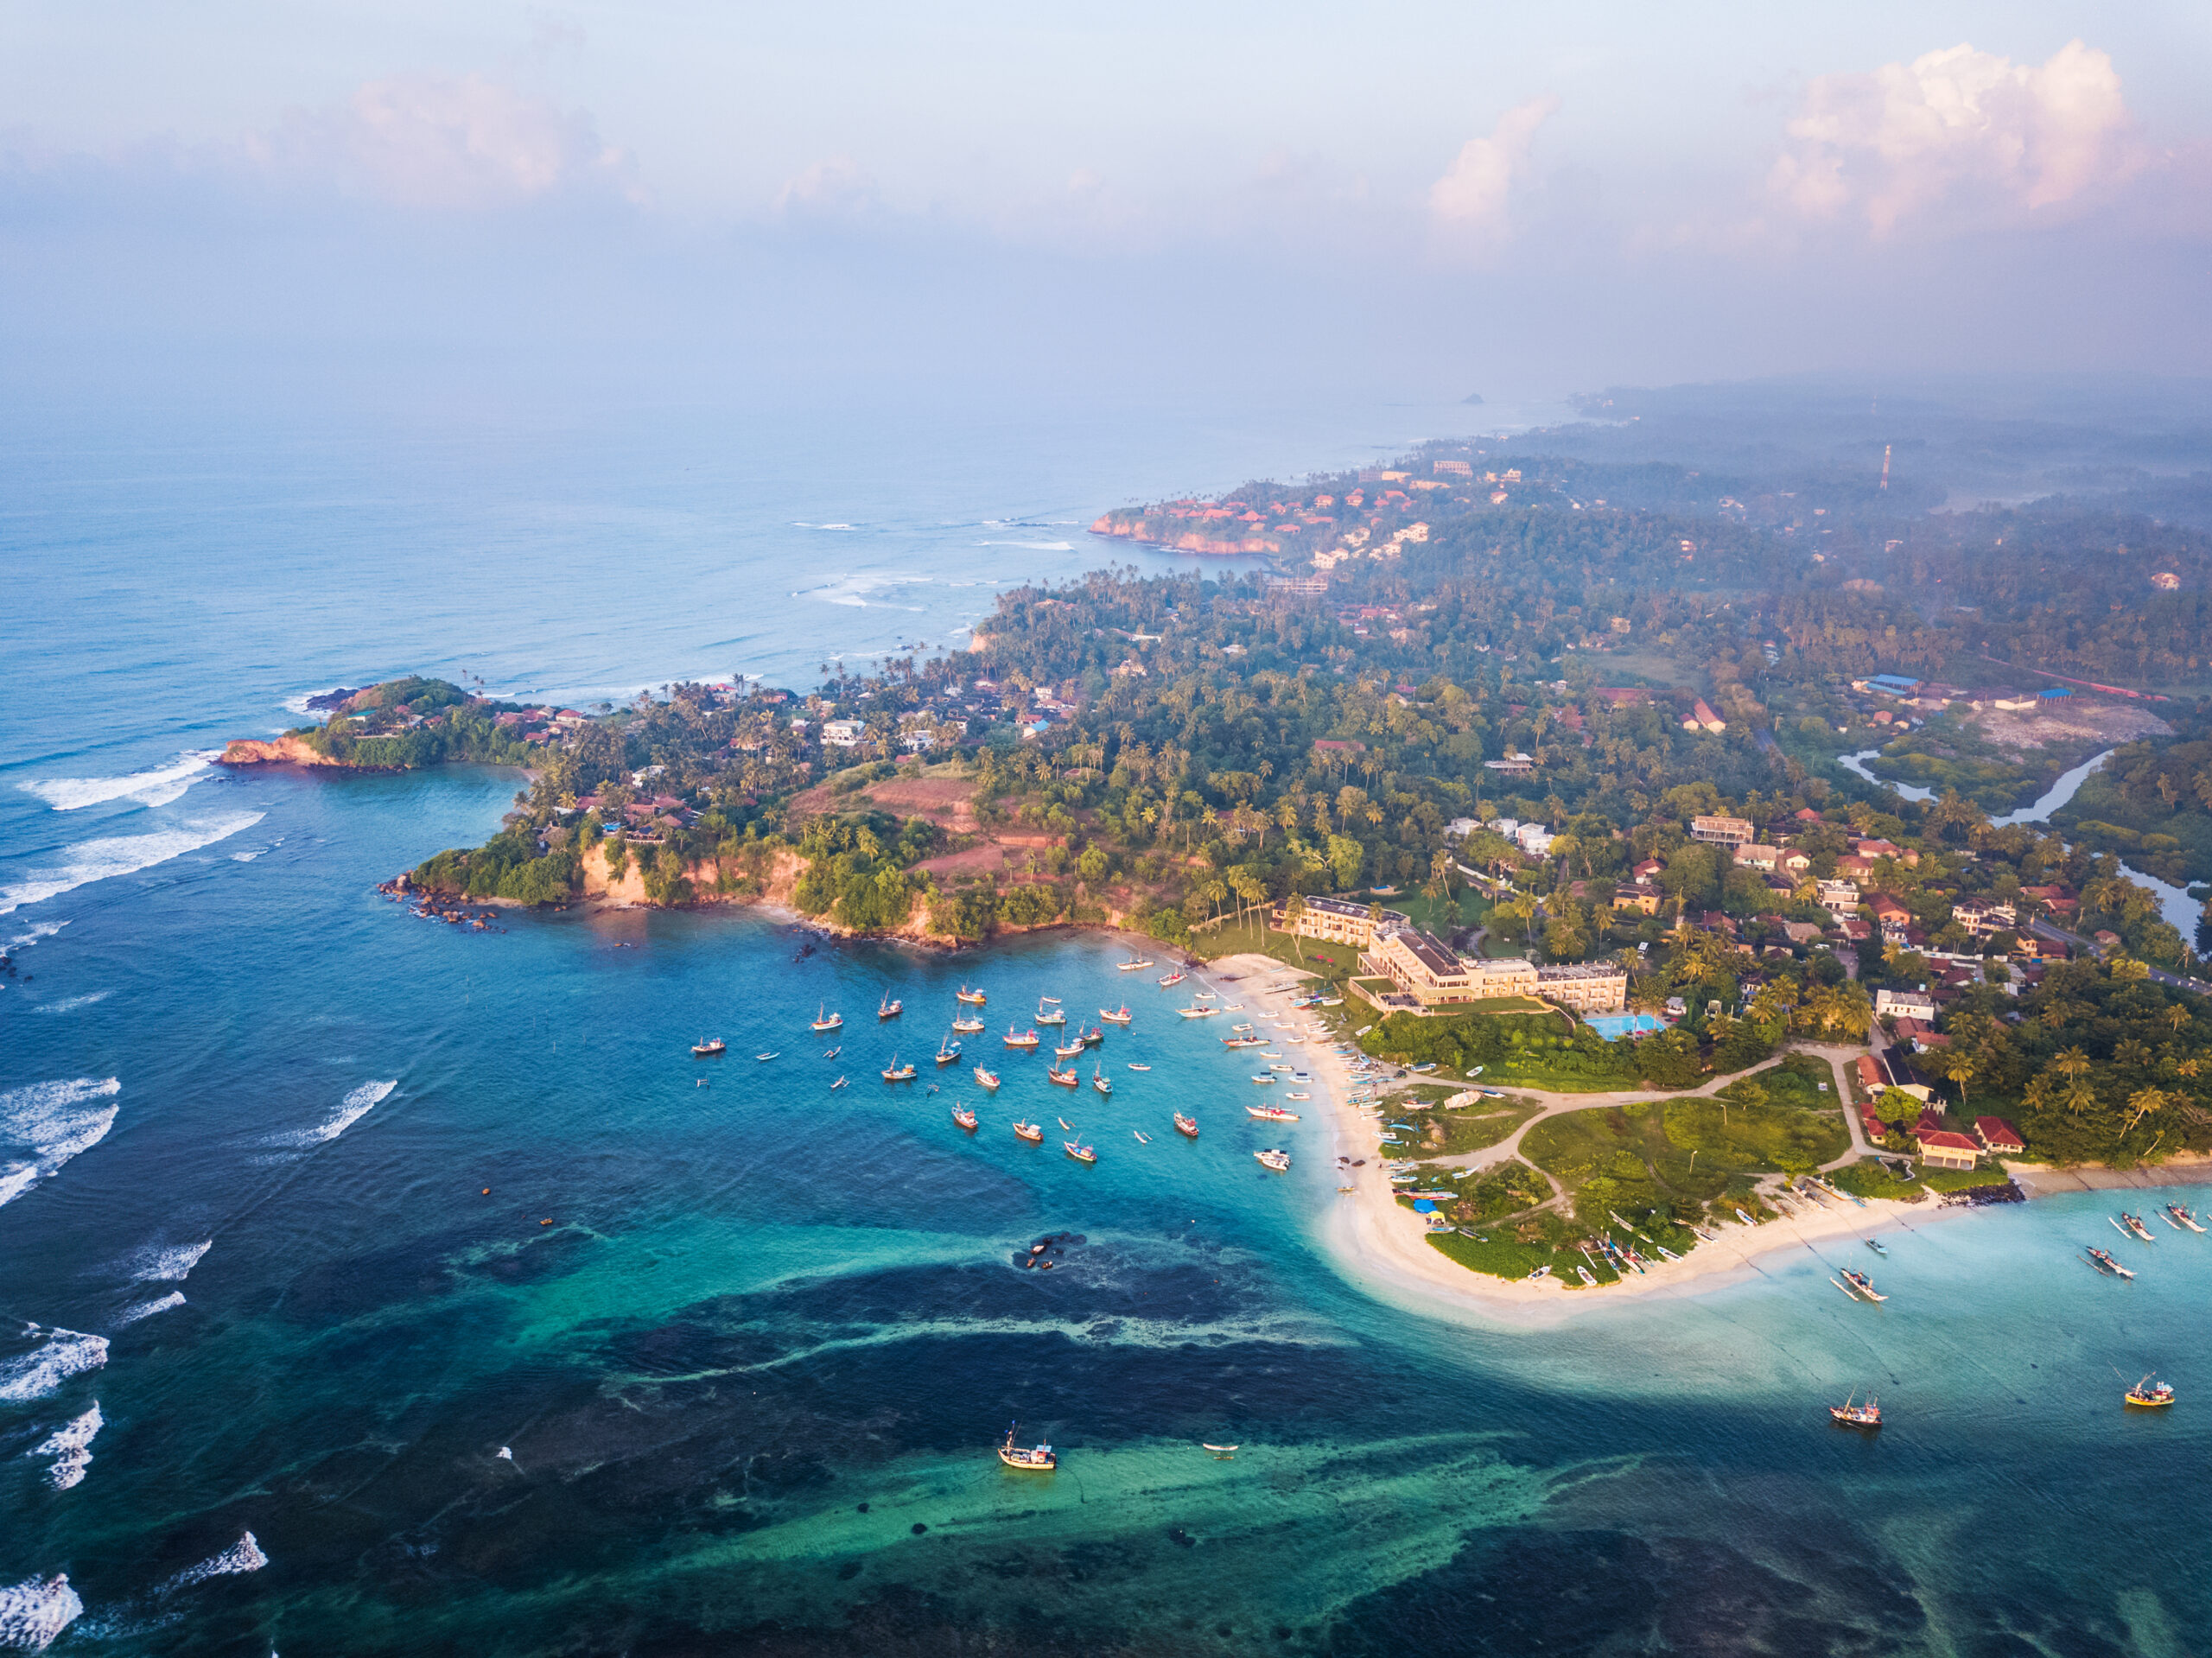 Aerial view of the Weligama cape with fishing village at sunrise, Sri Lanka.